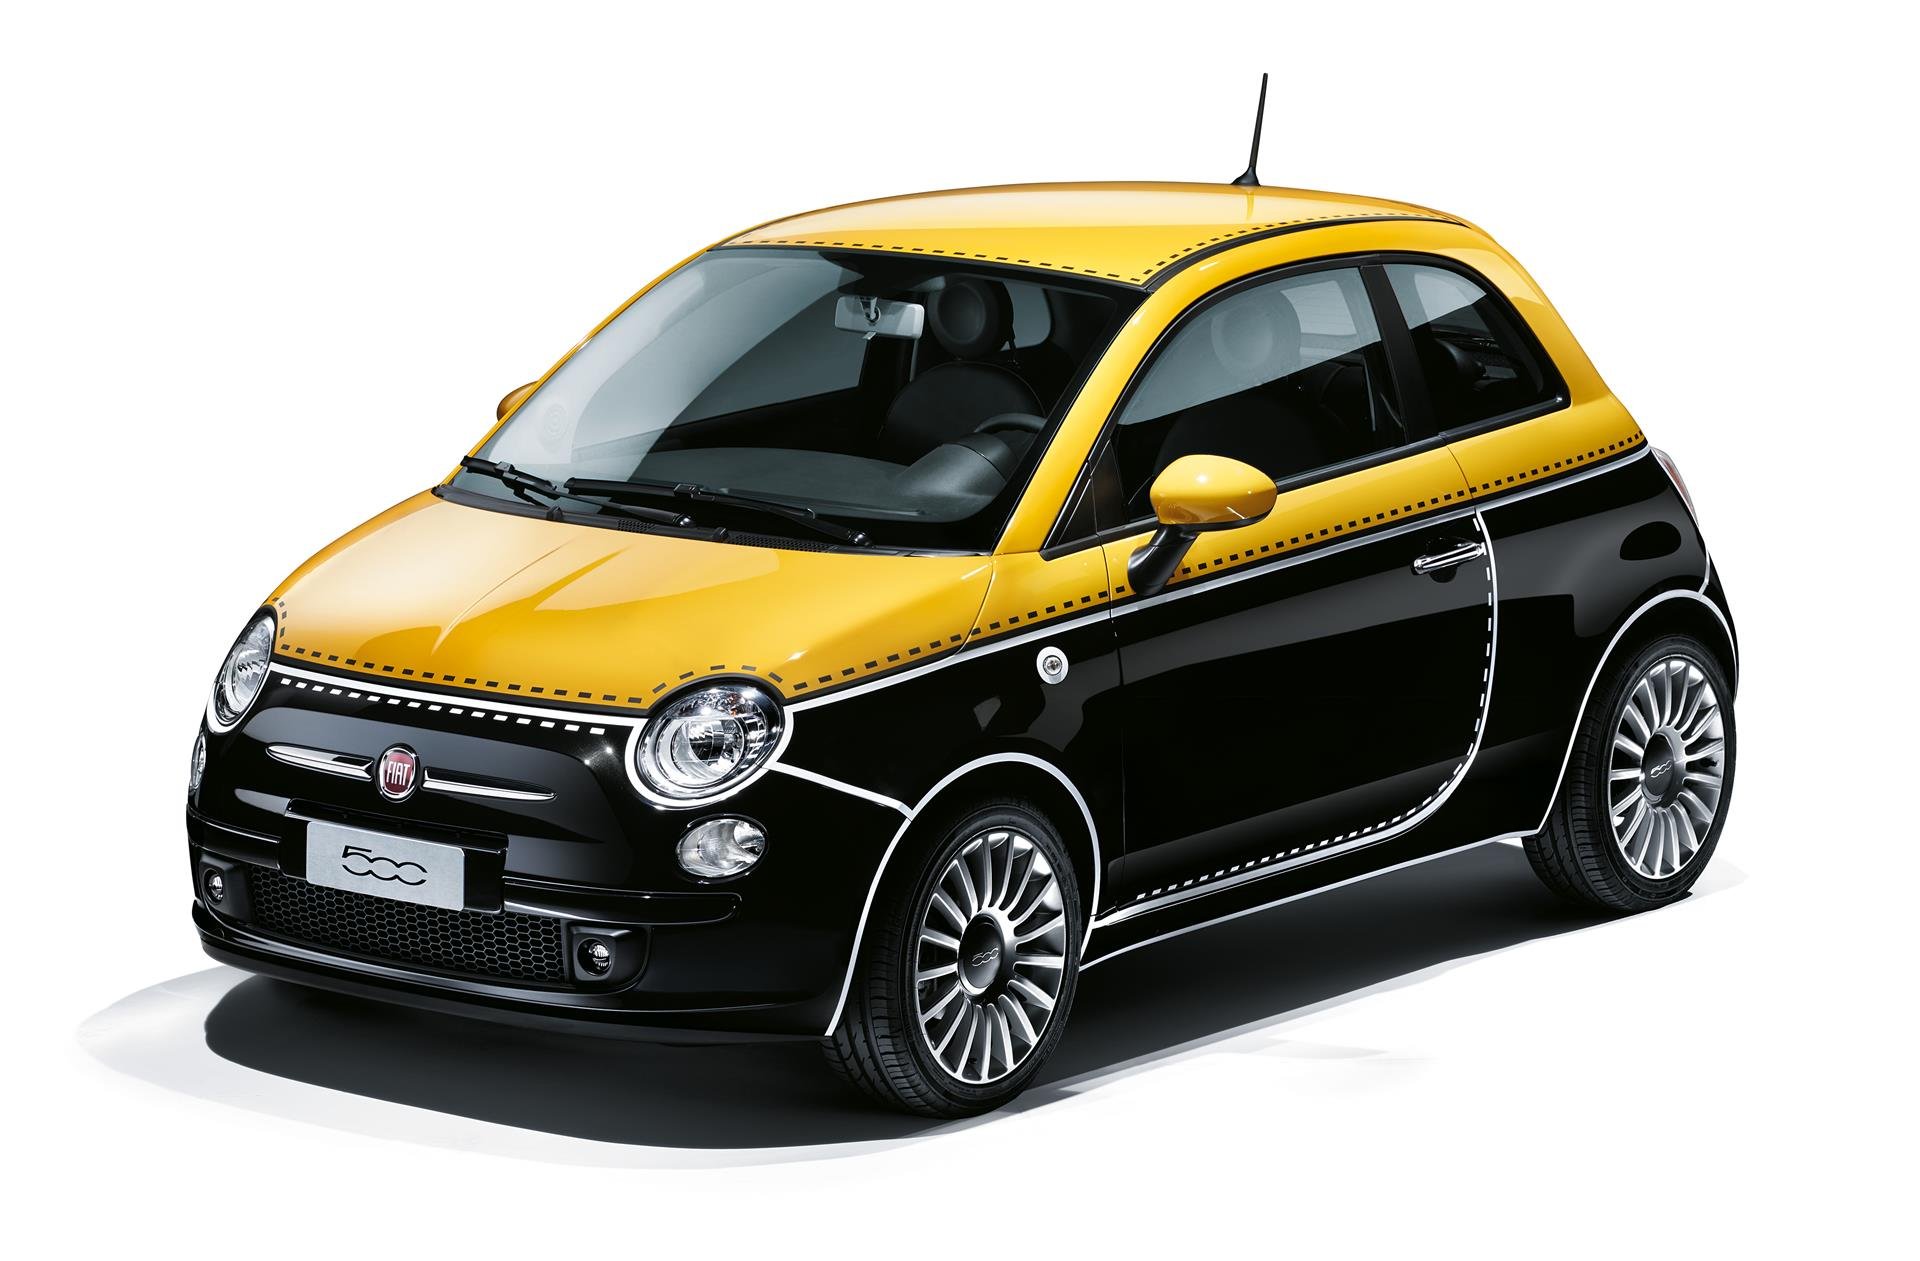 2015 fiat 500 couture technical specifications and data engine dimensions and mechanical. Black Bedroom Furniture Sets. Home Design Ideas